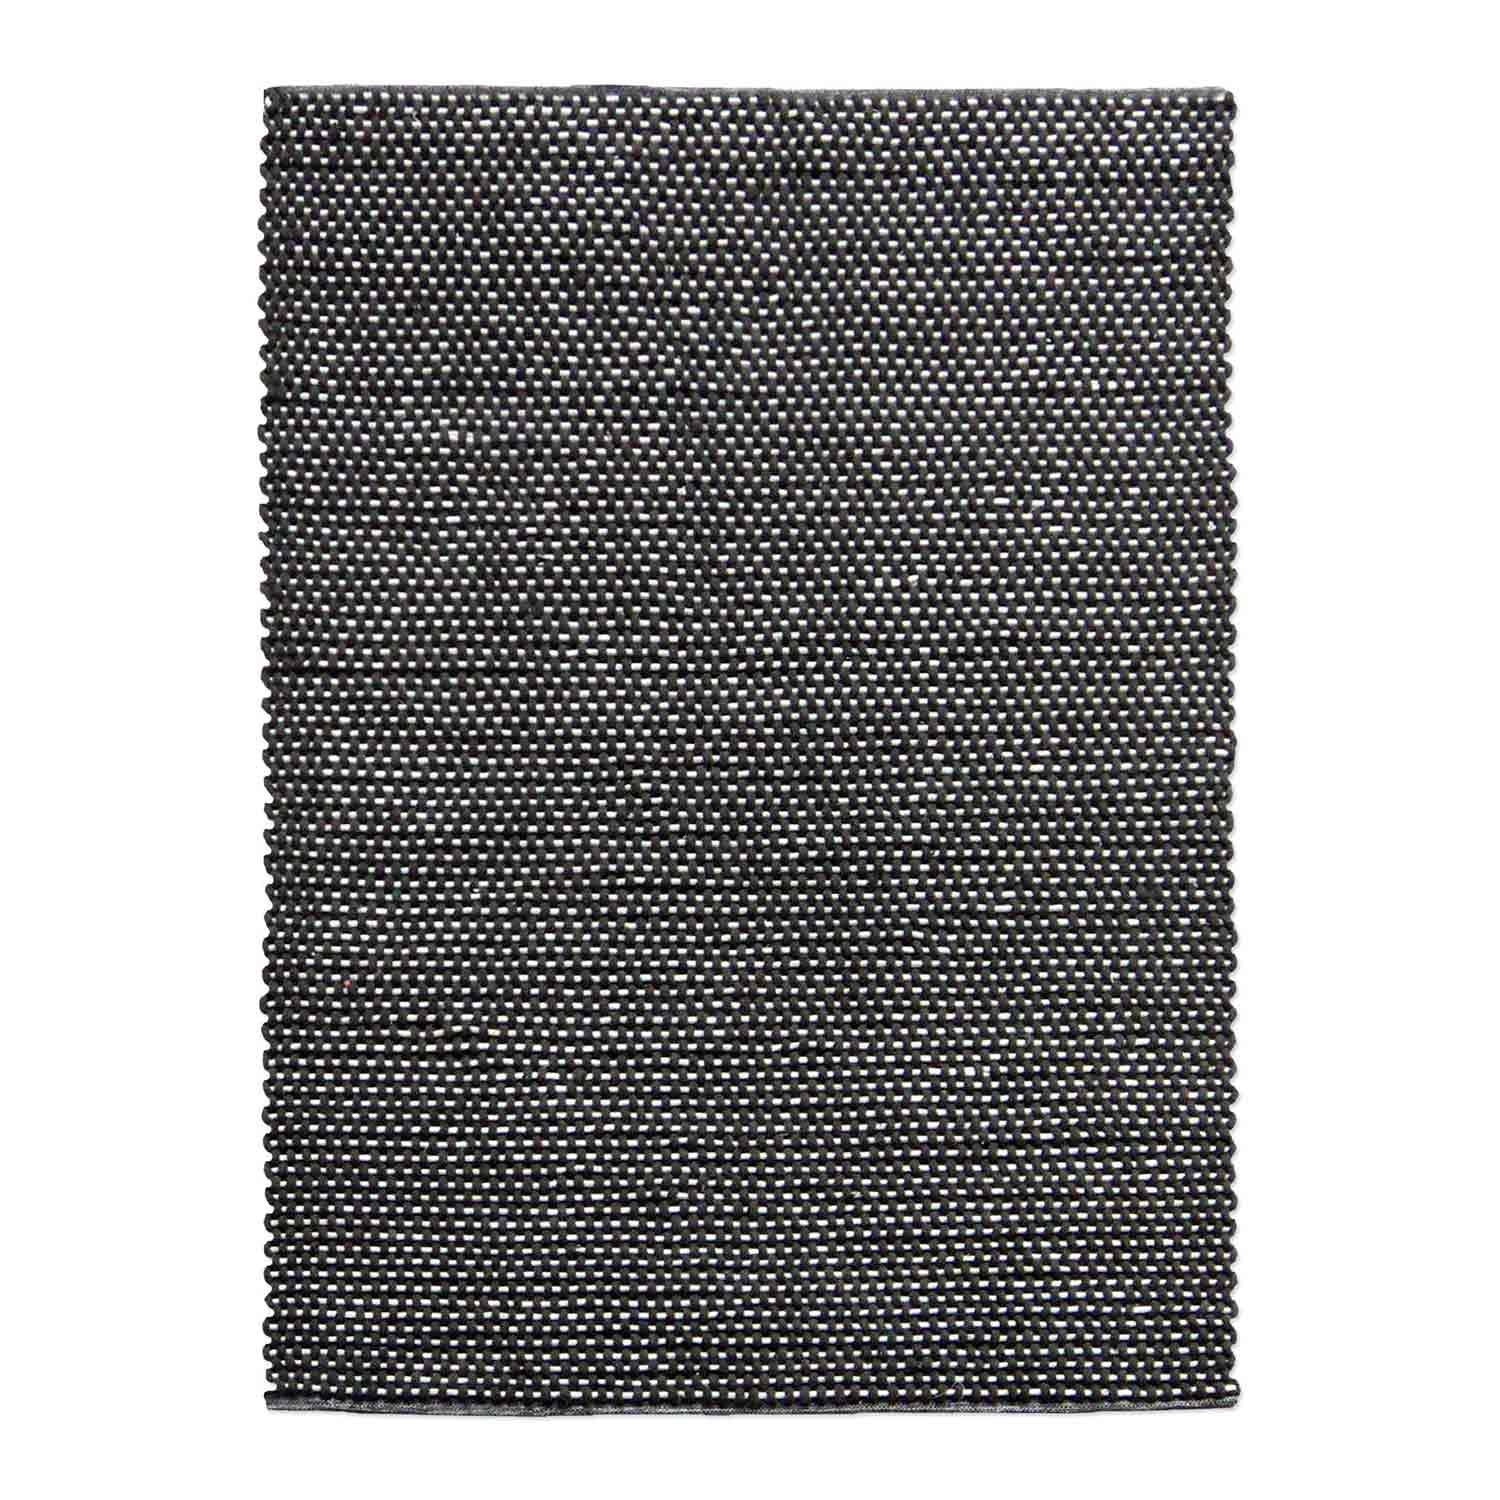 Uttermost Colemar 5 x 8 Rug - Charcoal